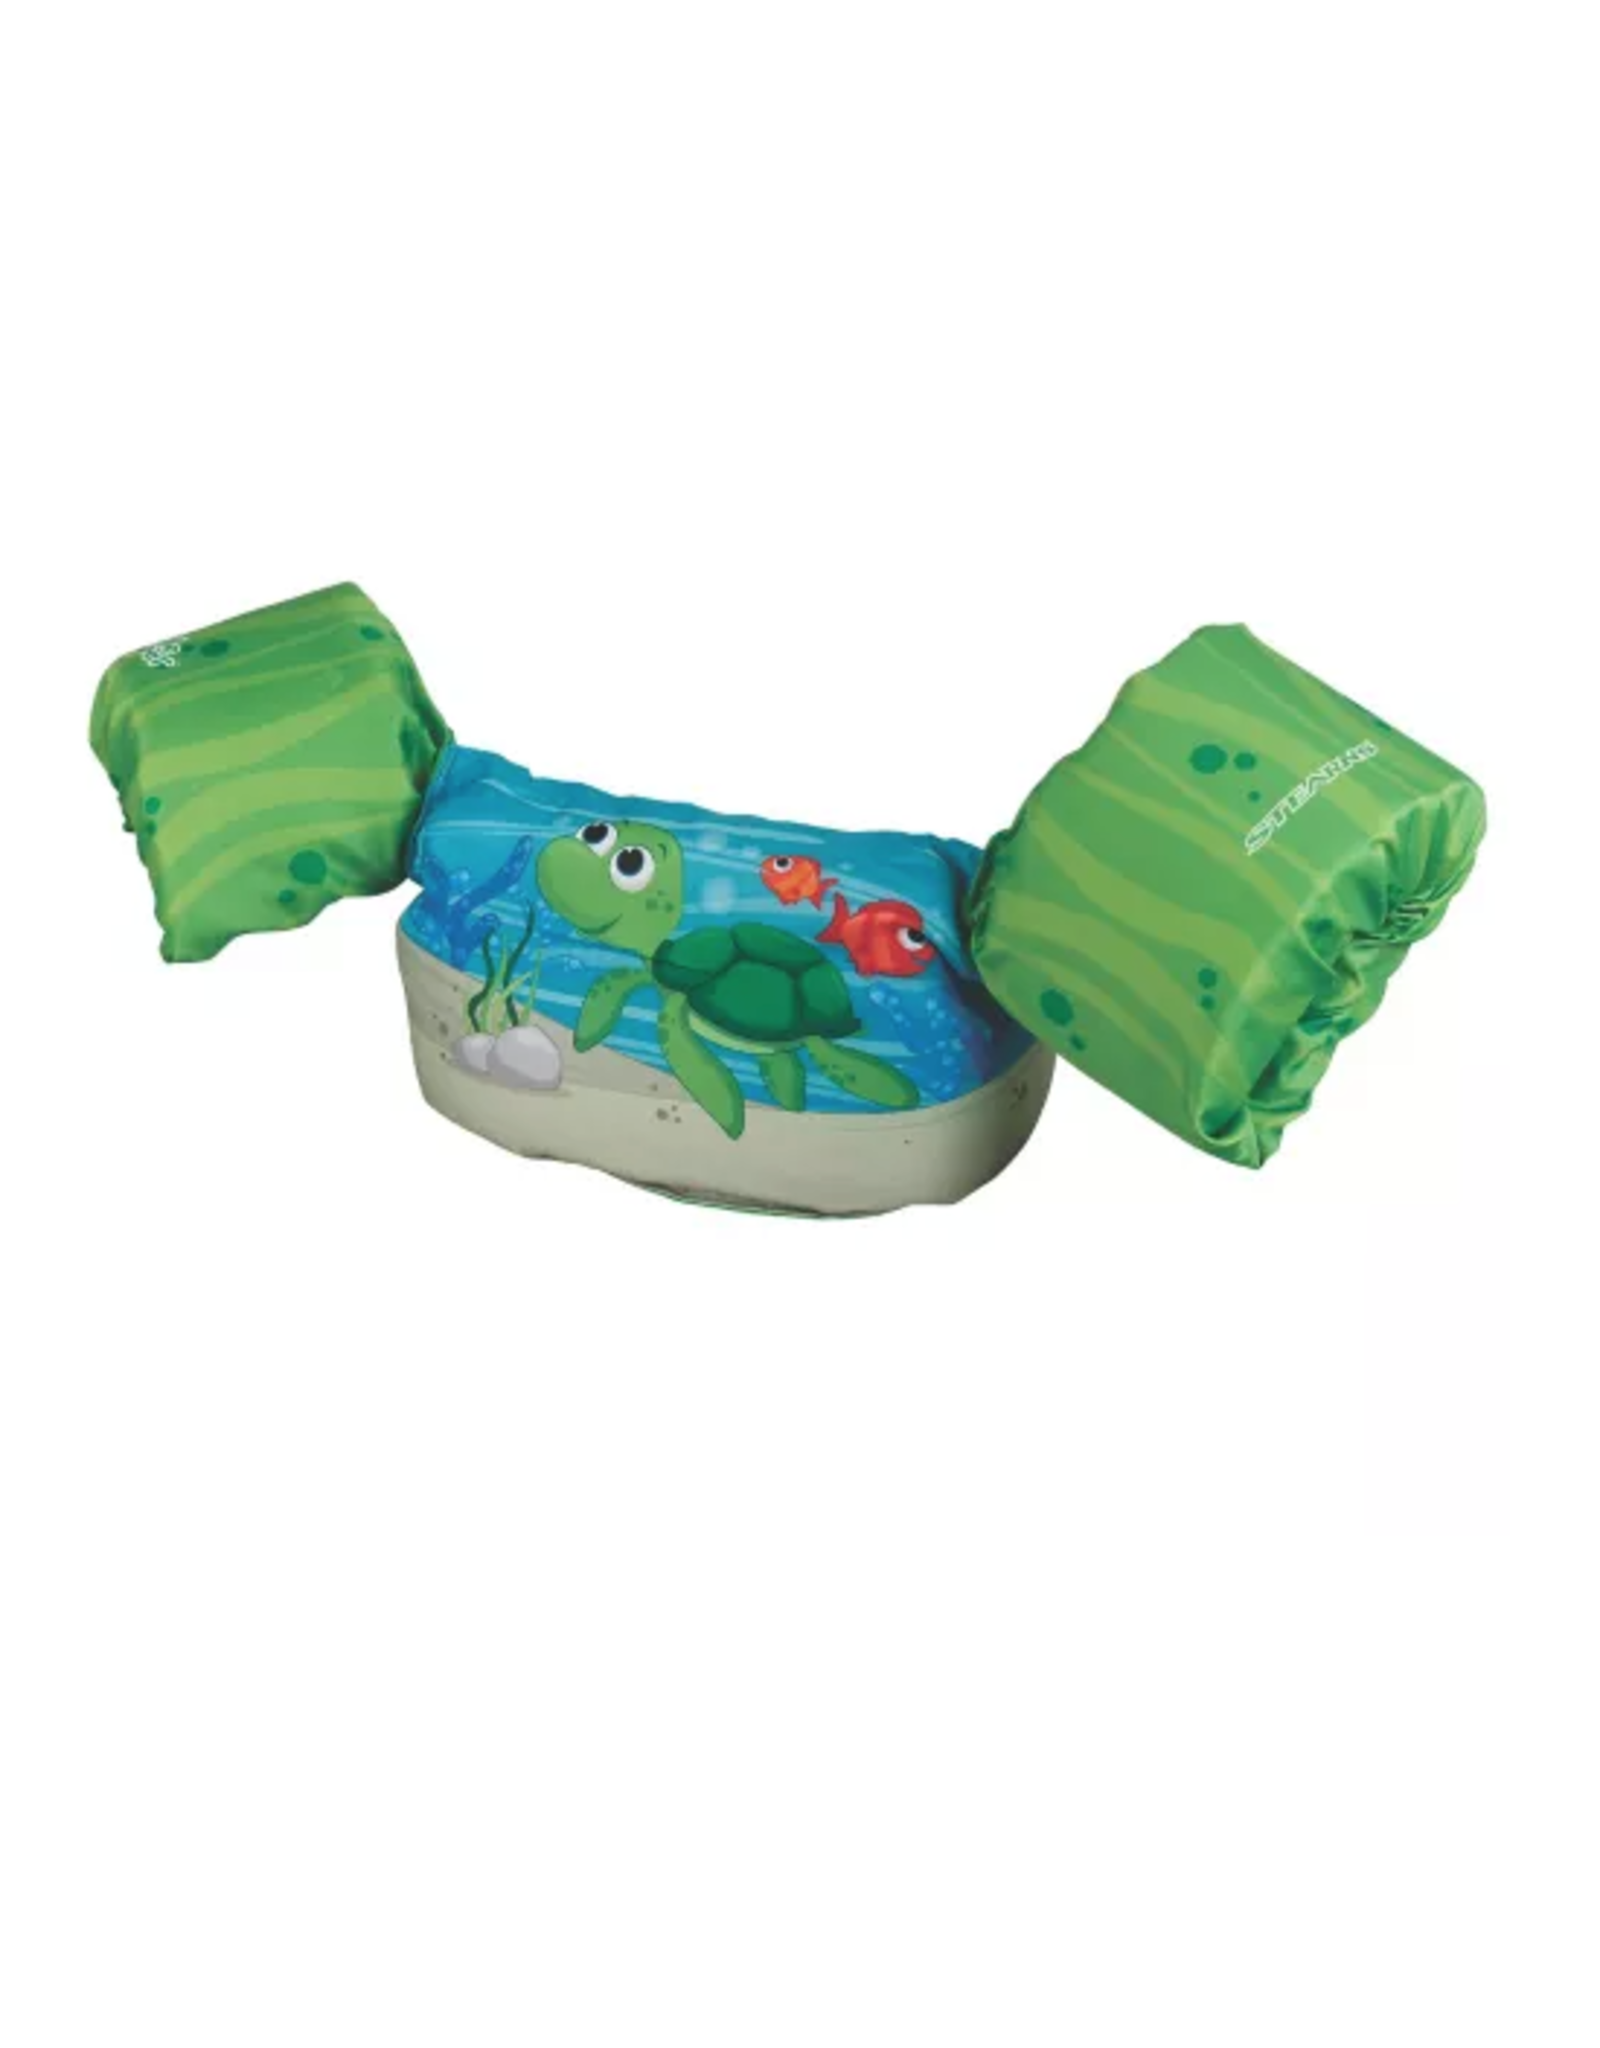 Stearns Stearns Puddle Jumper